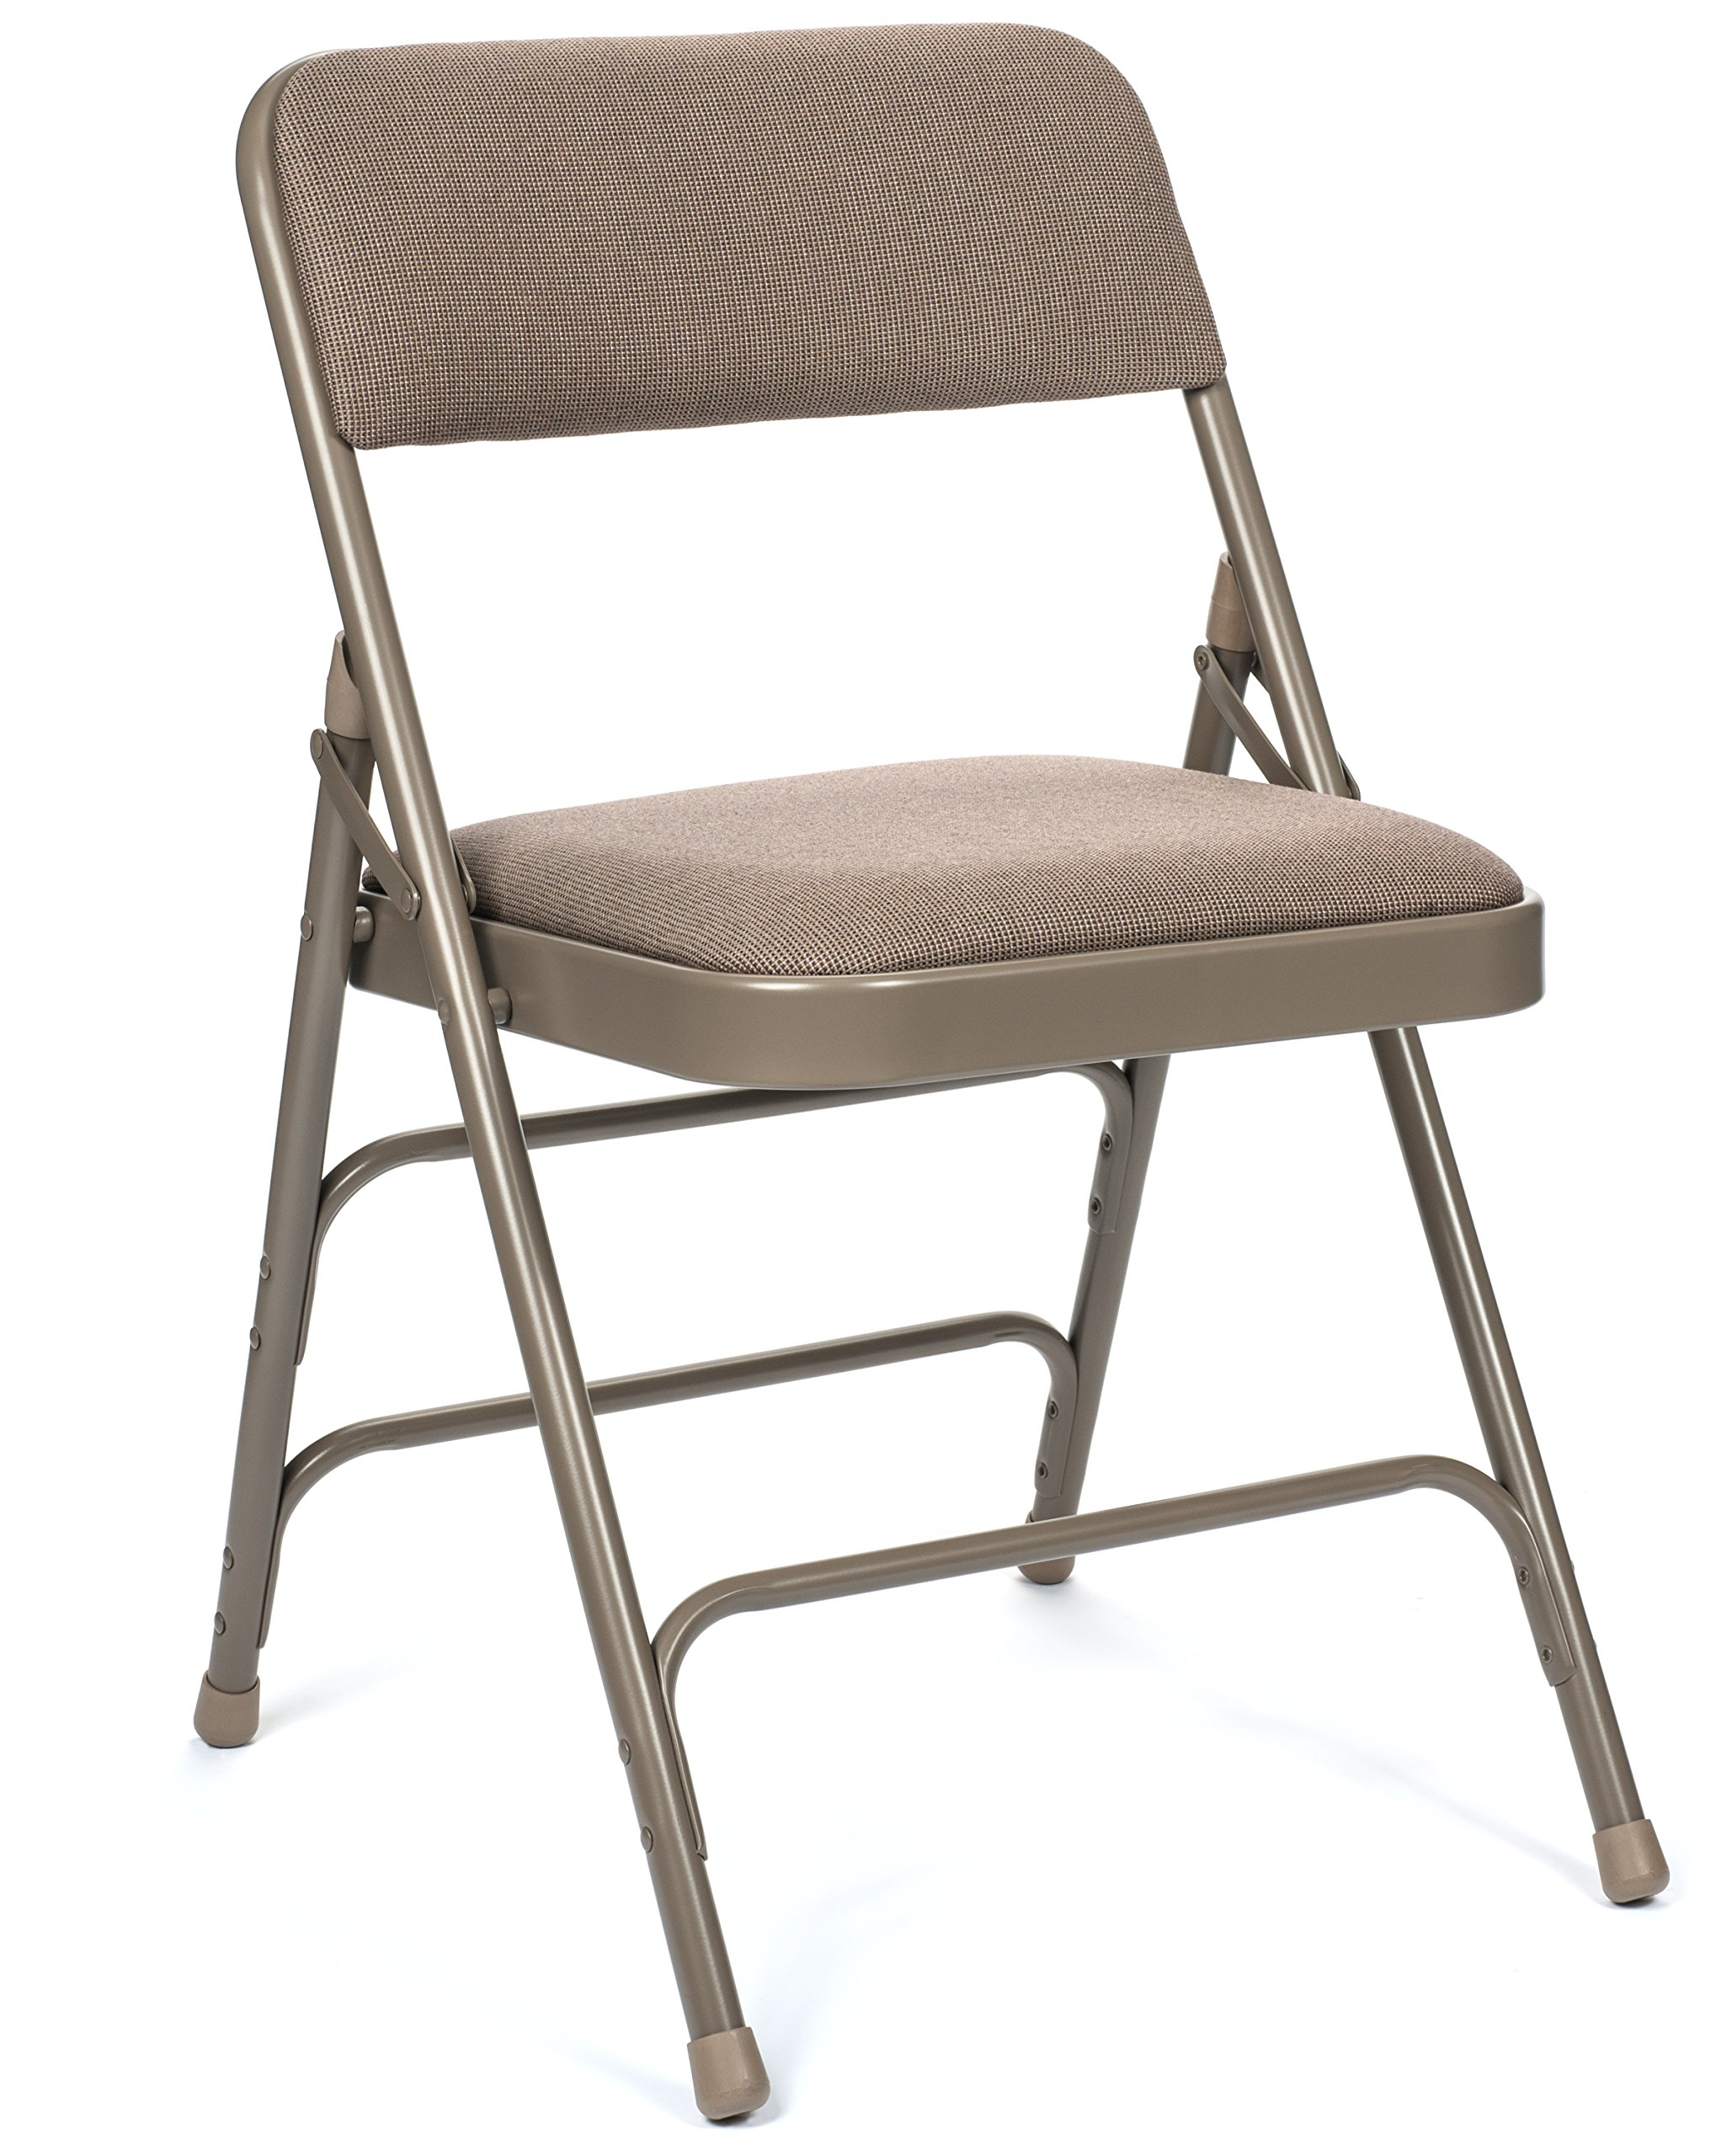 Commercial Fabric Padded Folding Chair, Triple Cross Bracing, Quad Hinging, 300 lb Tested, 4 Pack (Beige) by XL Series